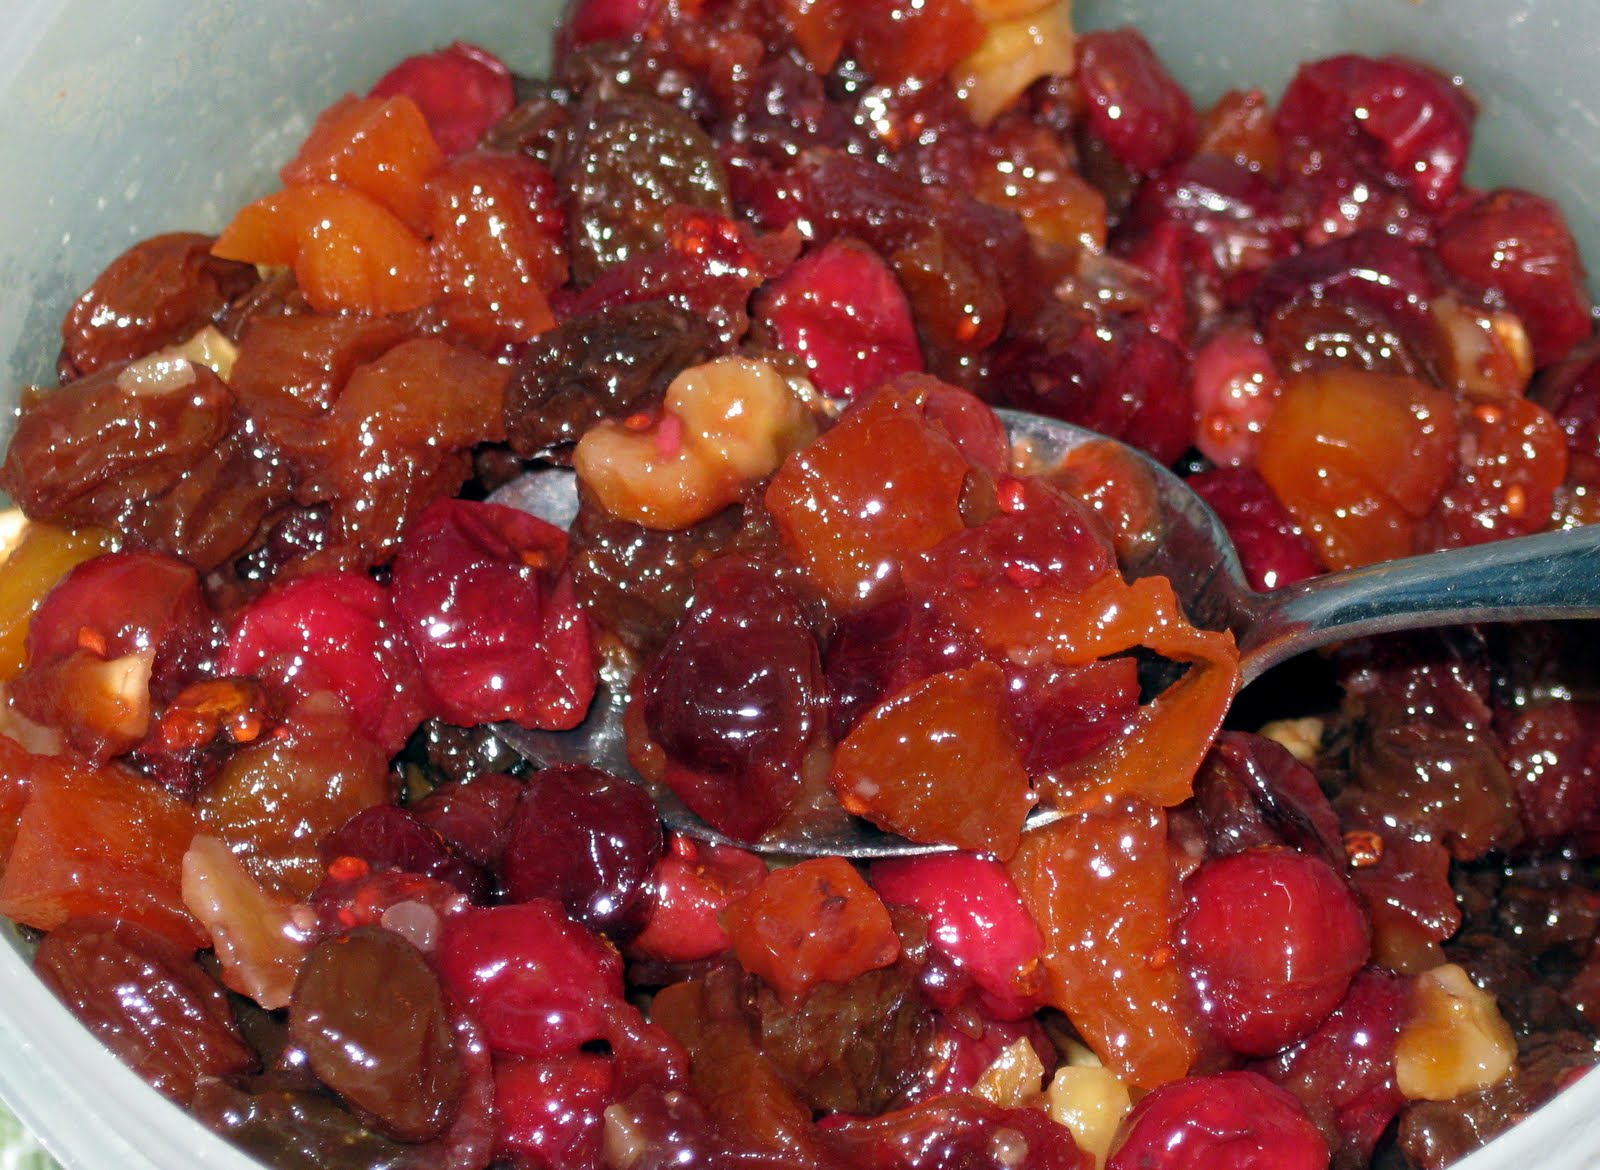 Cranberry-Orange Relish -- adapted from recipe by NatalieHaughton